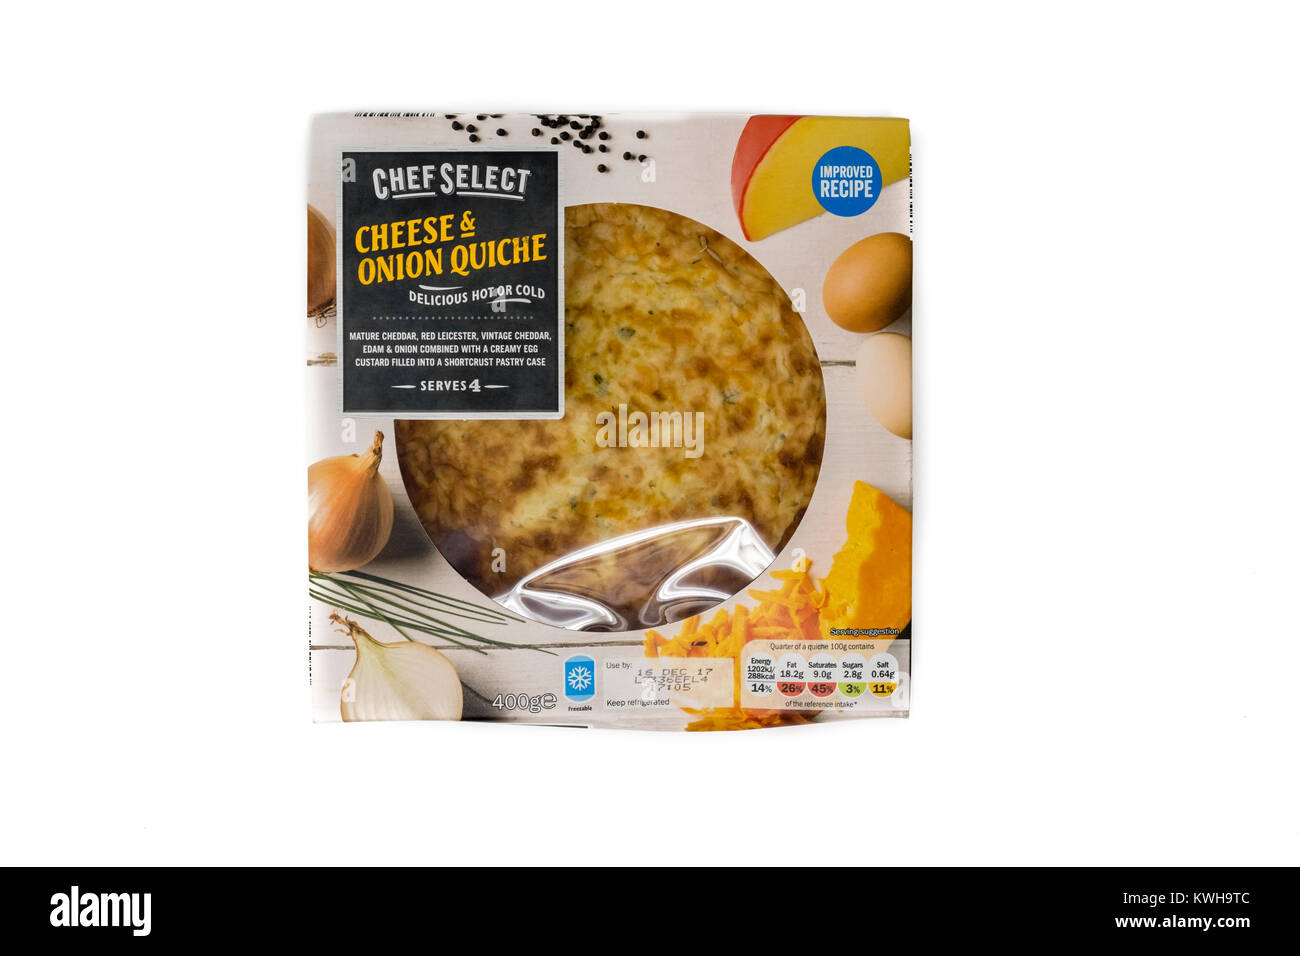 Packet of Lidl 'Chef Select' brand cheese & onion quiche with label showing use by date and ingredients - Stock Image